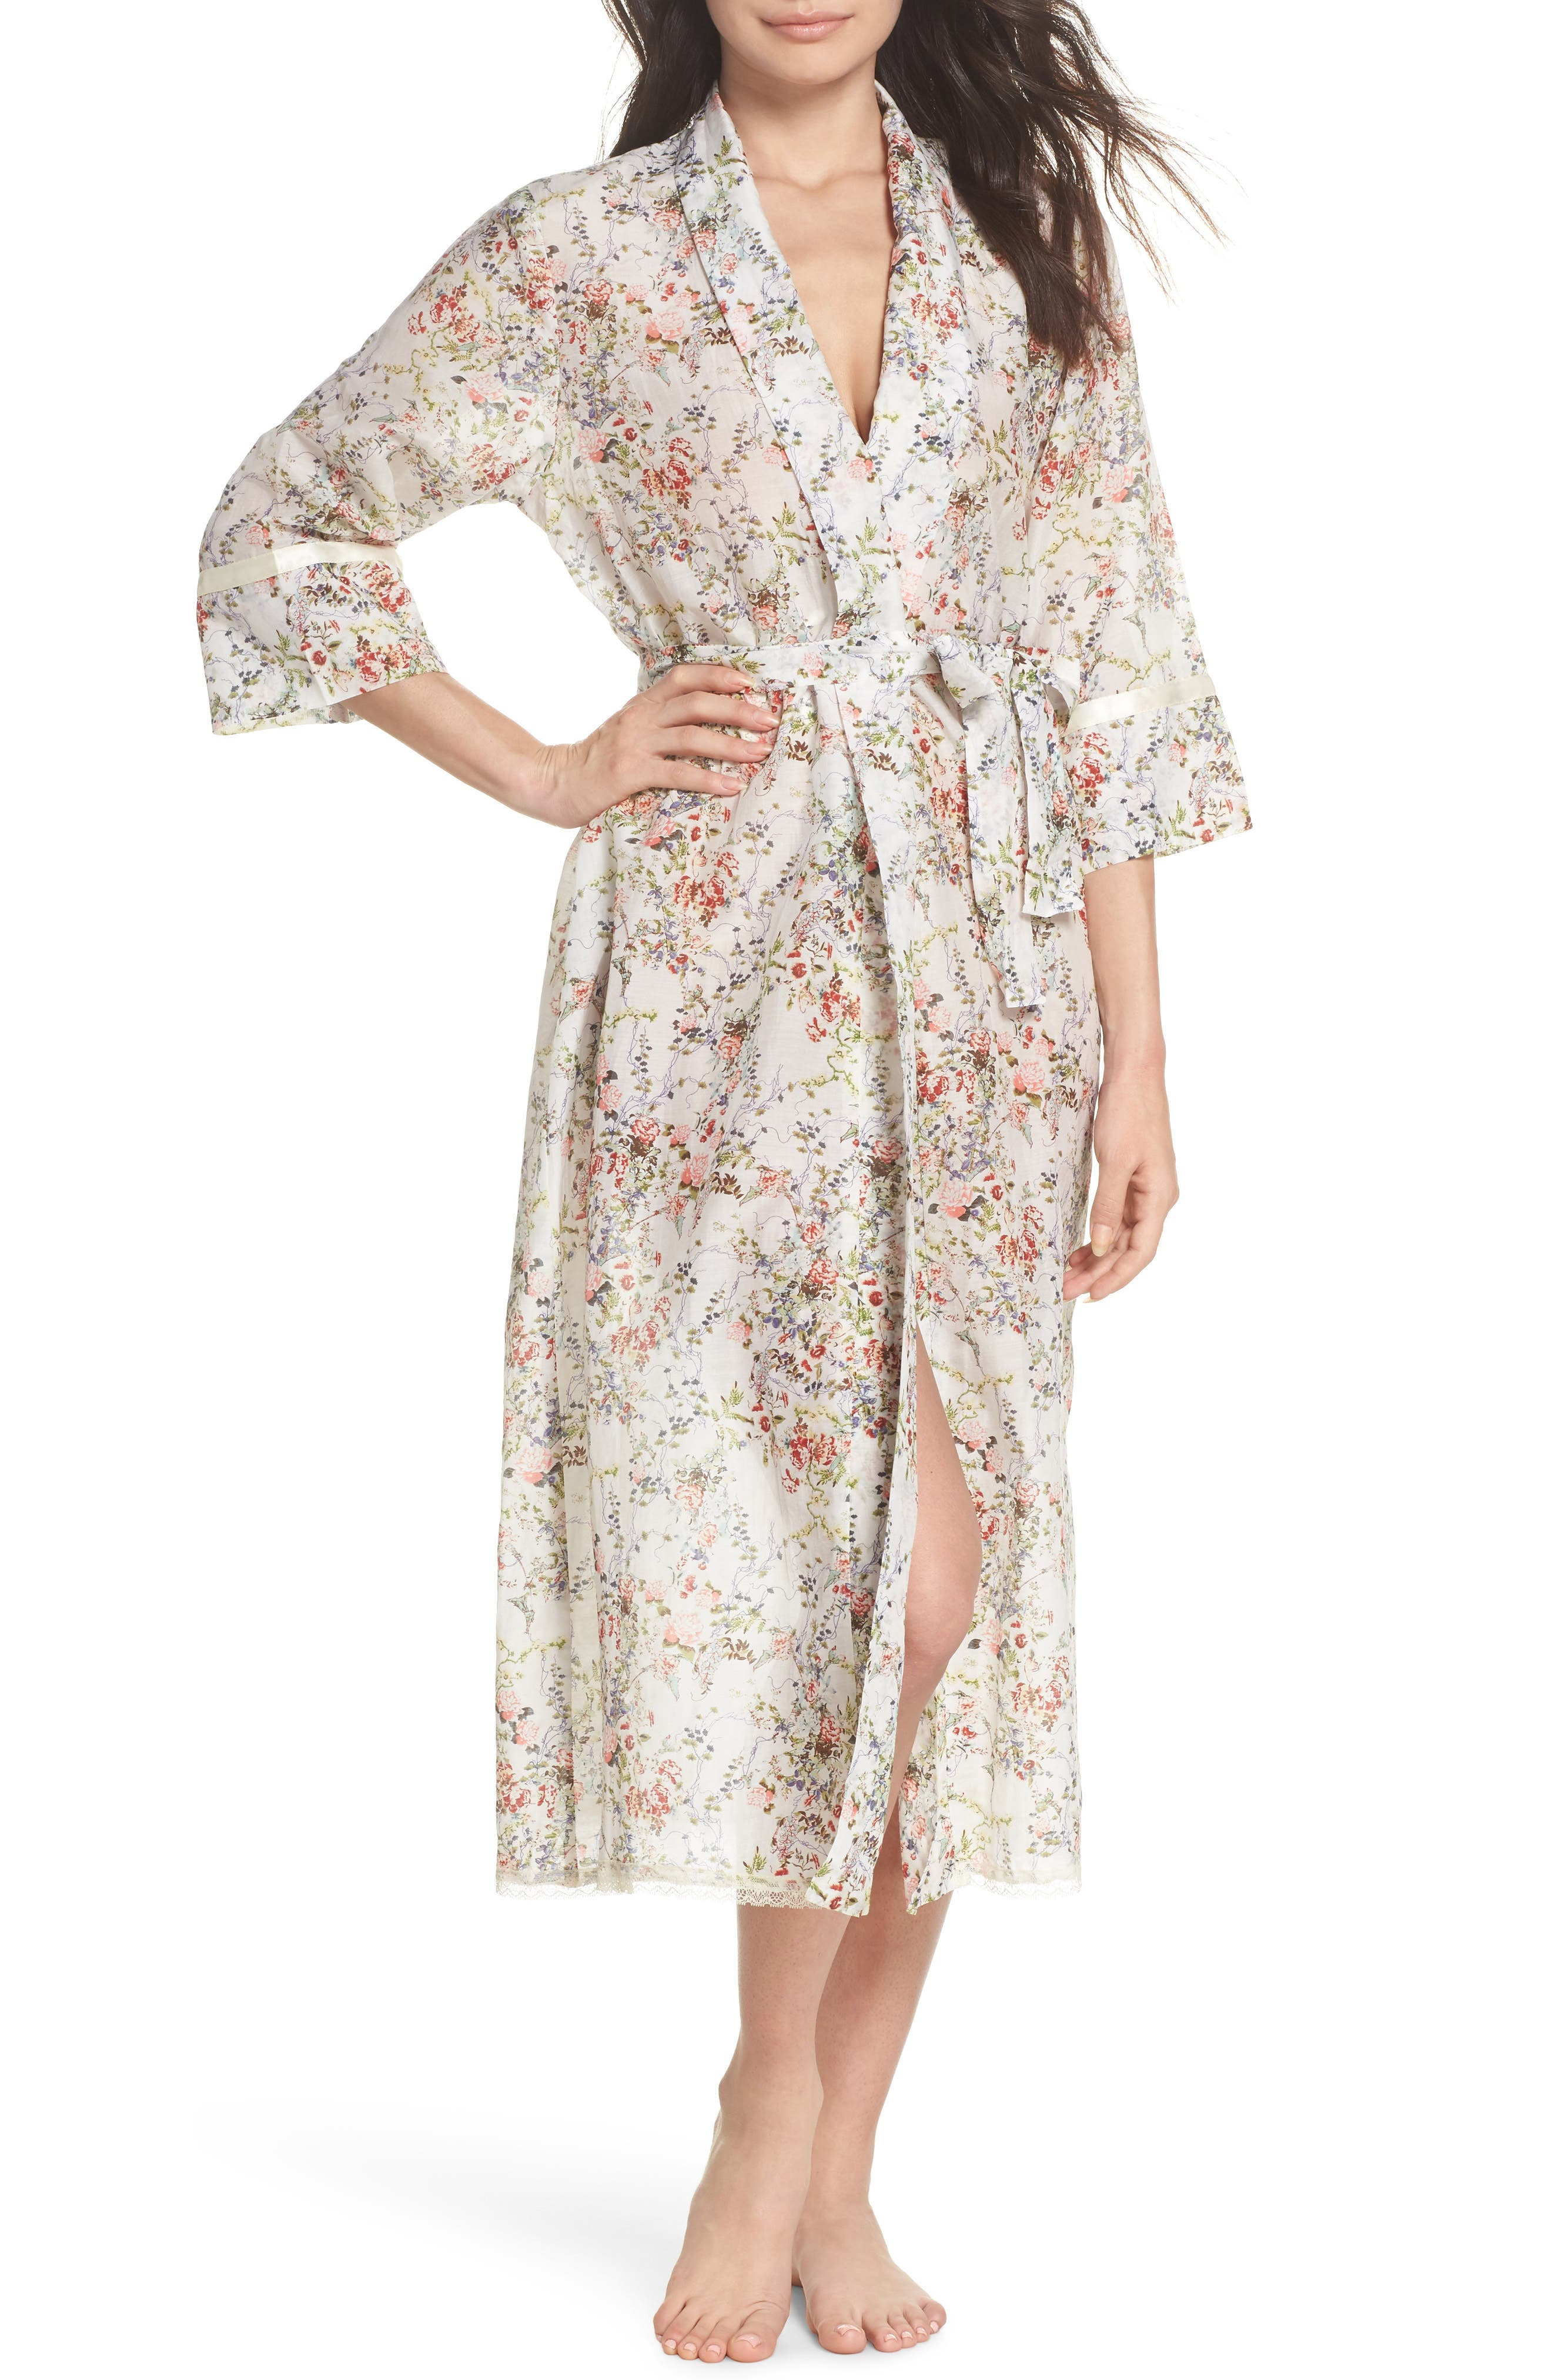 Yolly Floral Cotton & Silk Robe,                             Main thumbnail 1, color,                             Ivory Floral